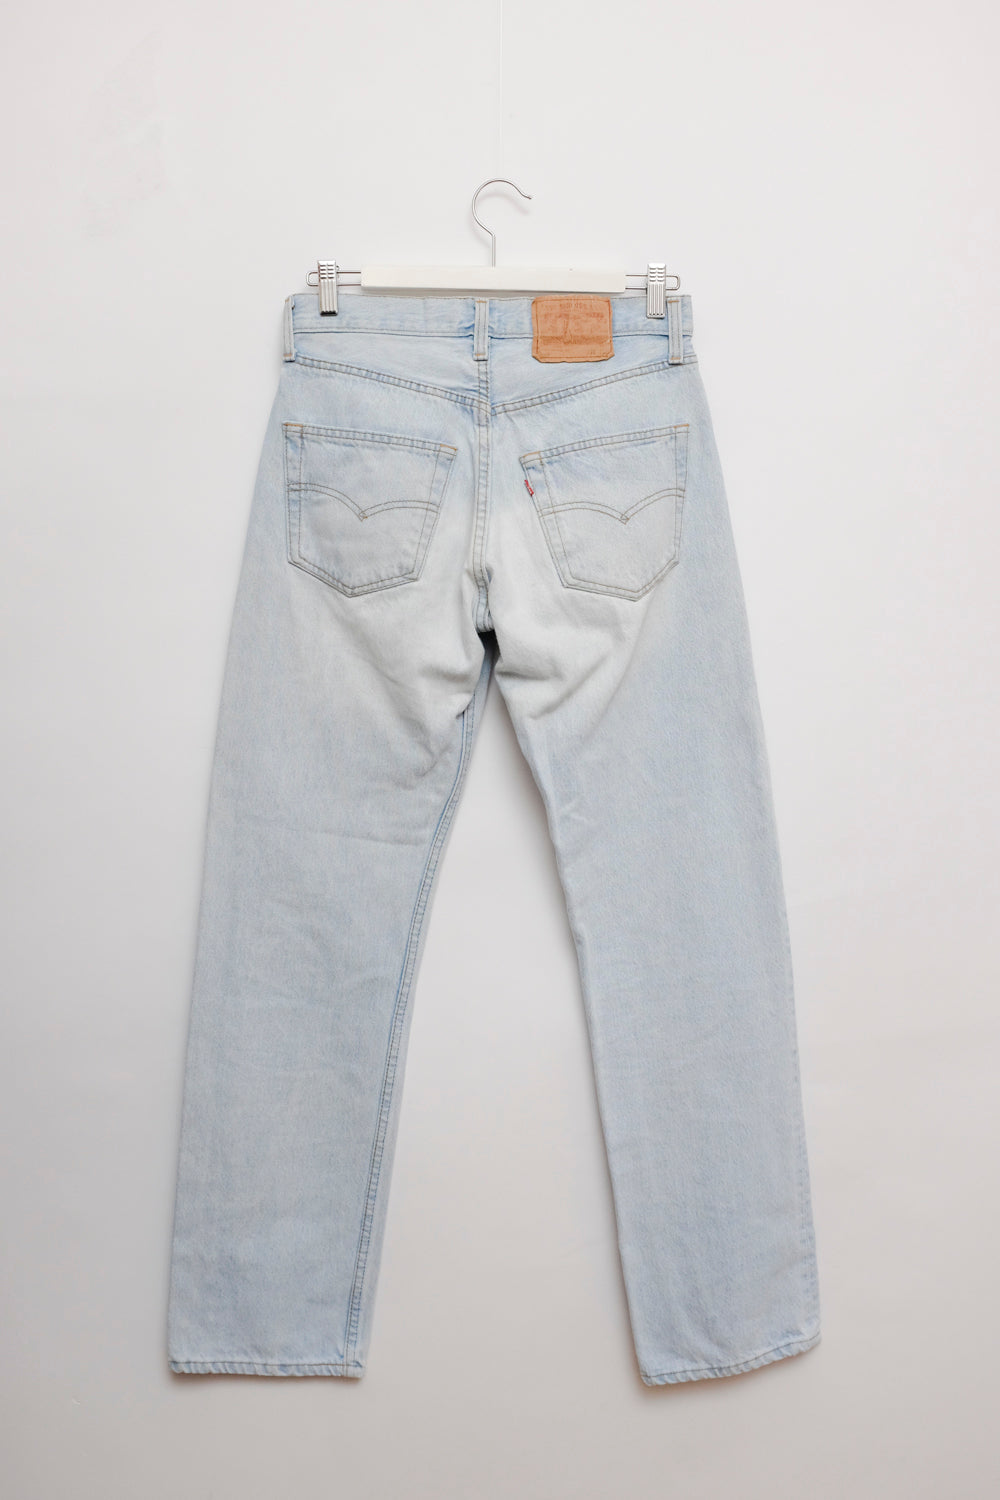 0015_LEVIS 501 PALE BLUE CROP DENIM